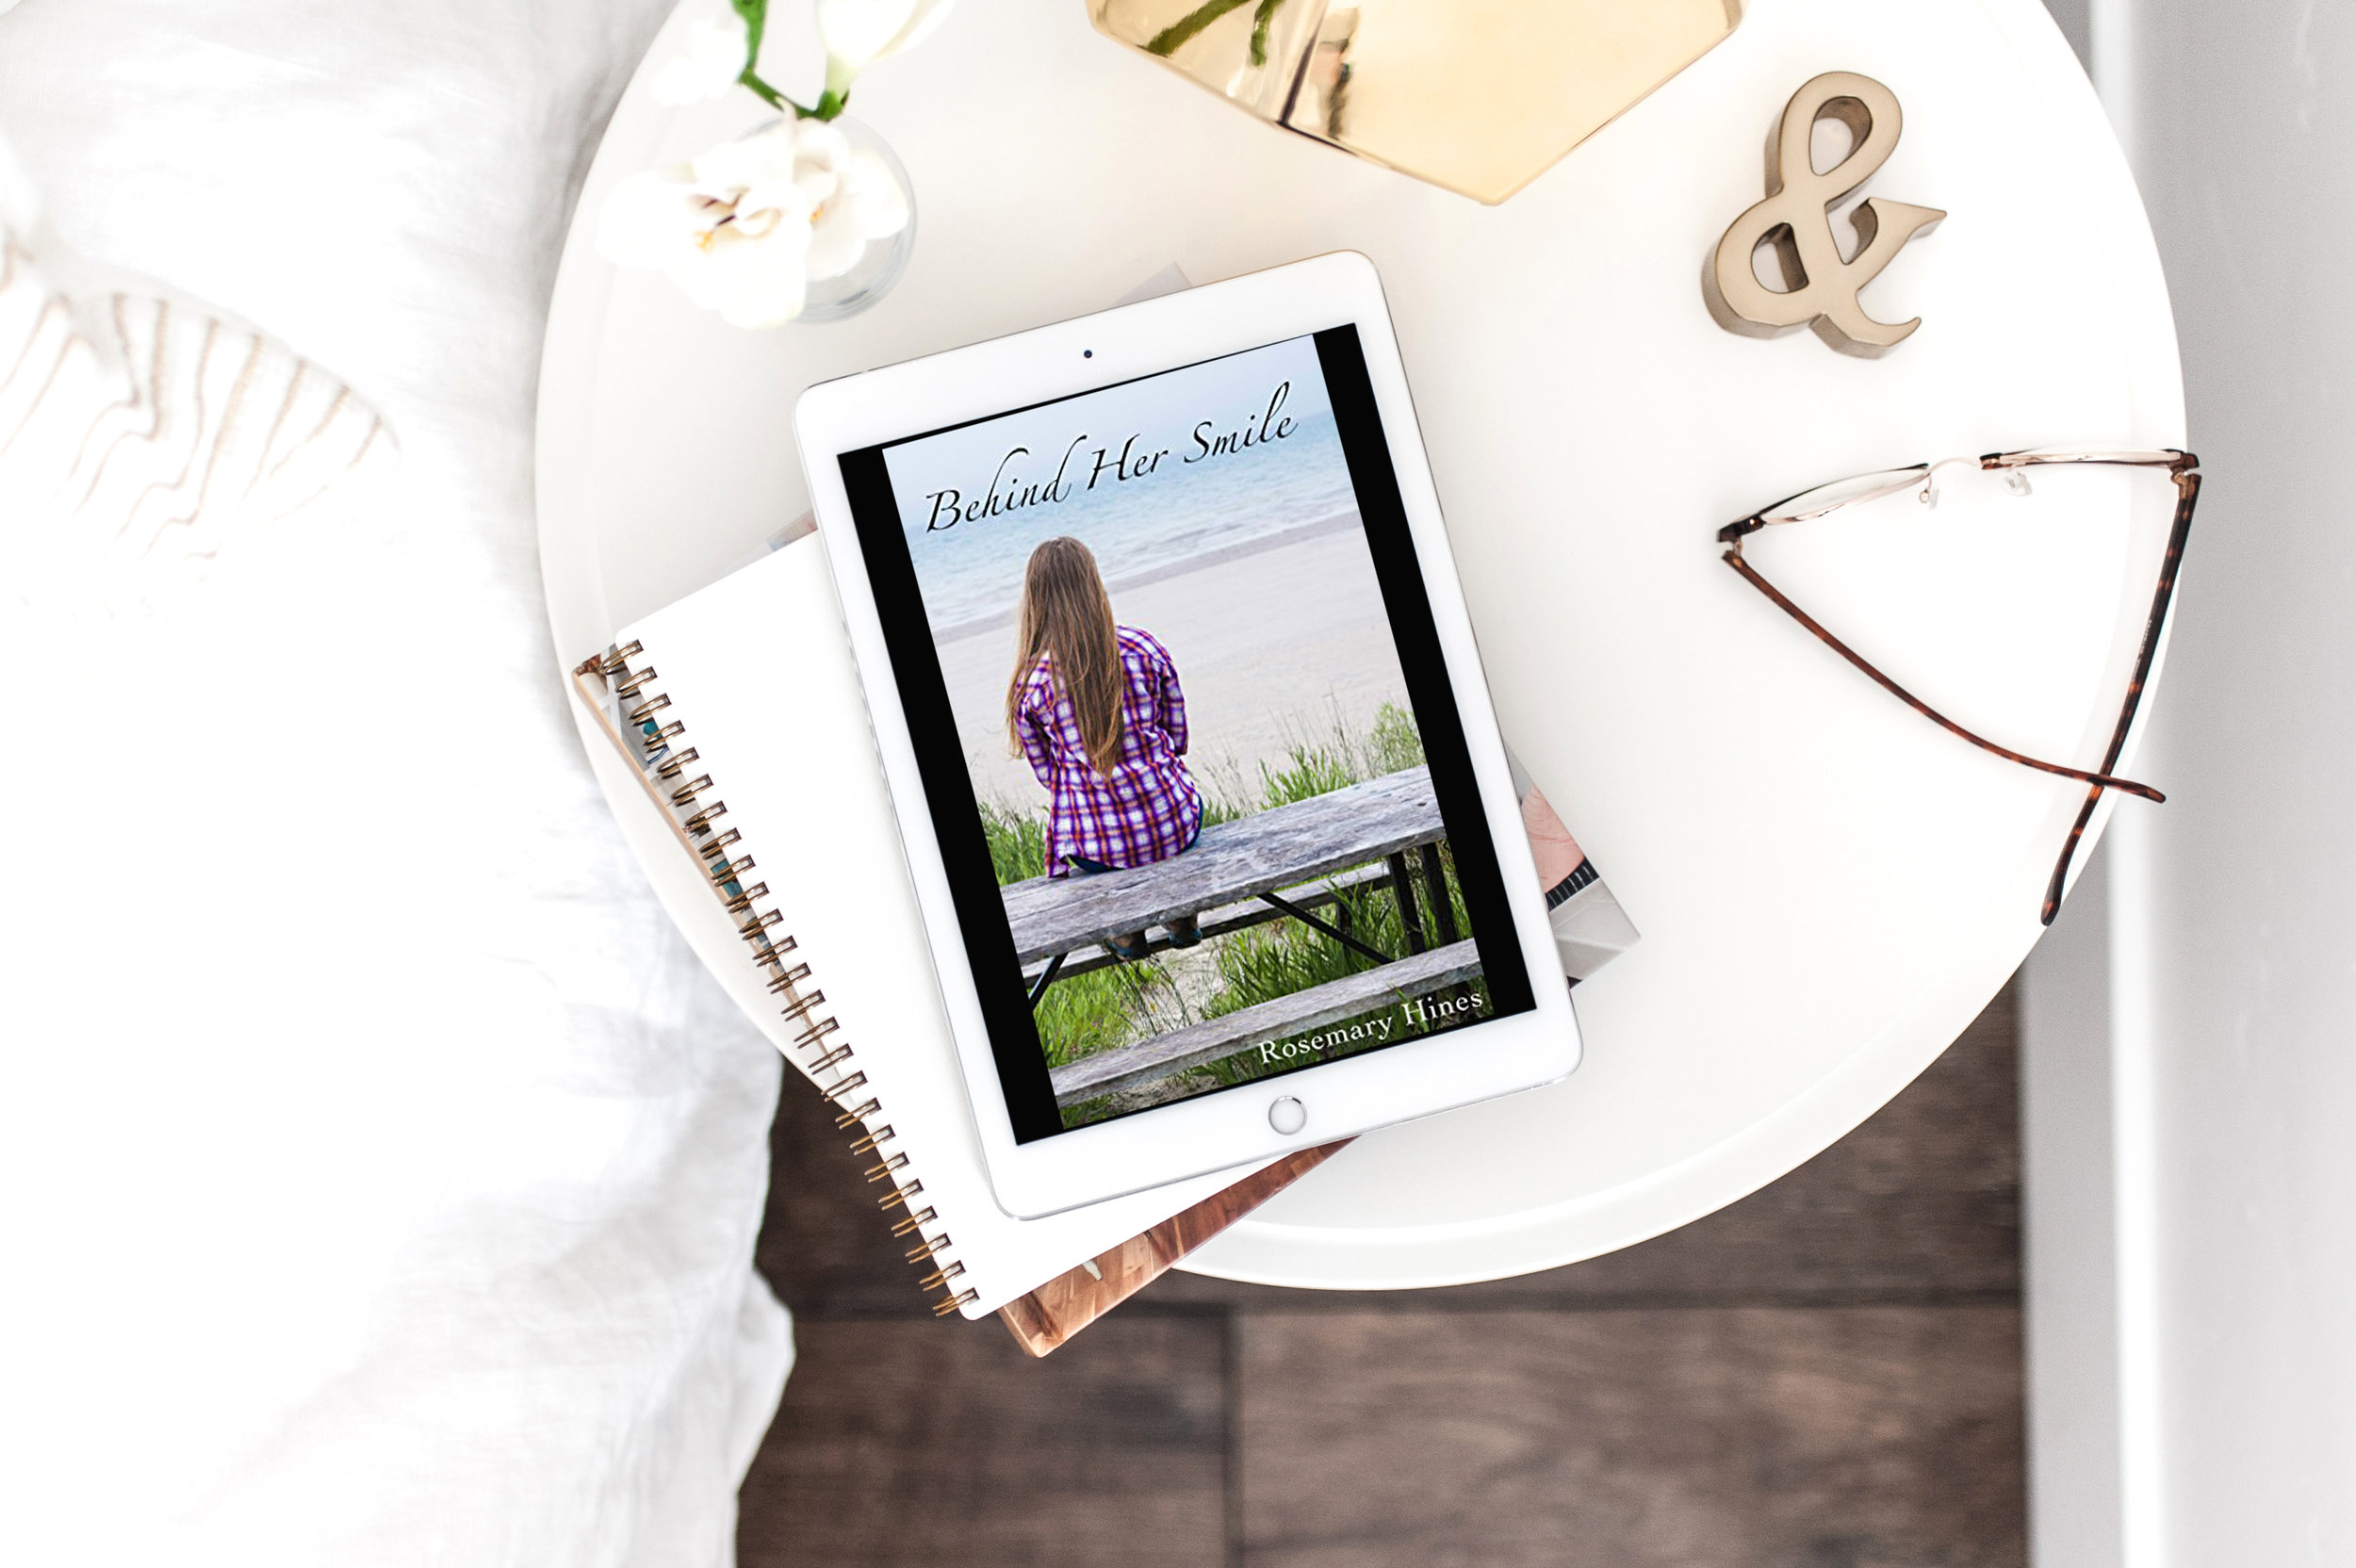 behind her smile rosemary hines book review